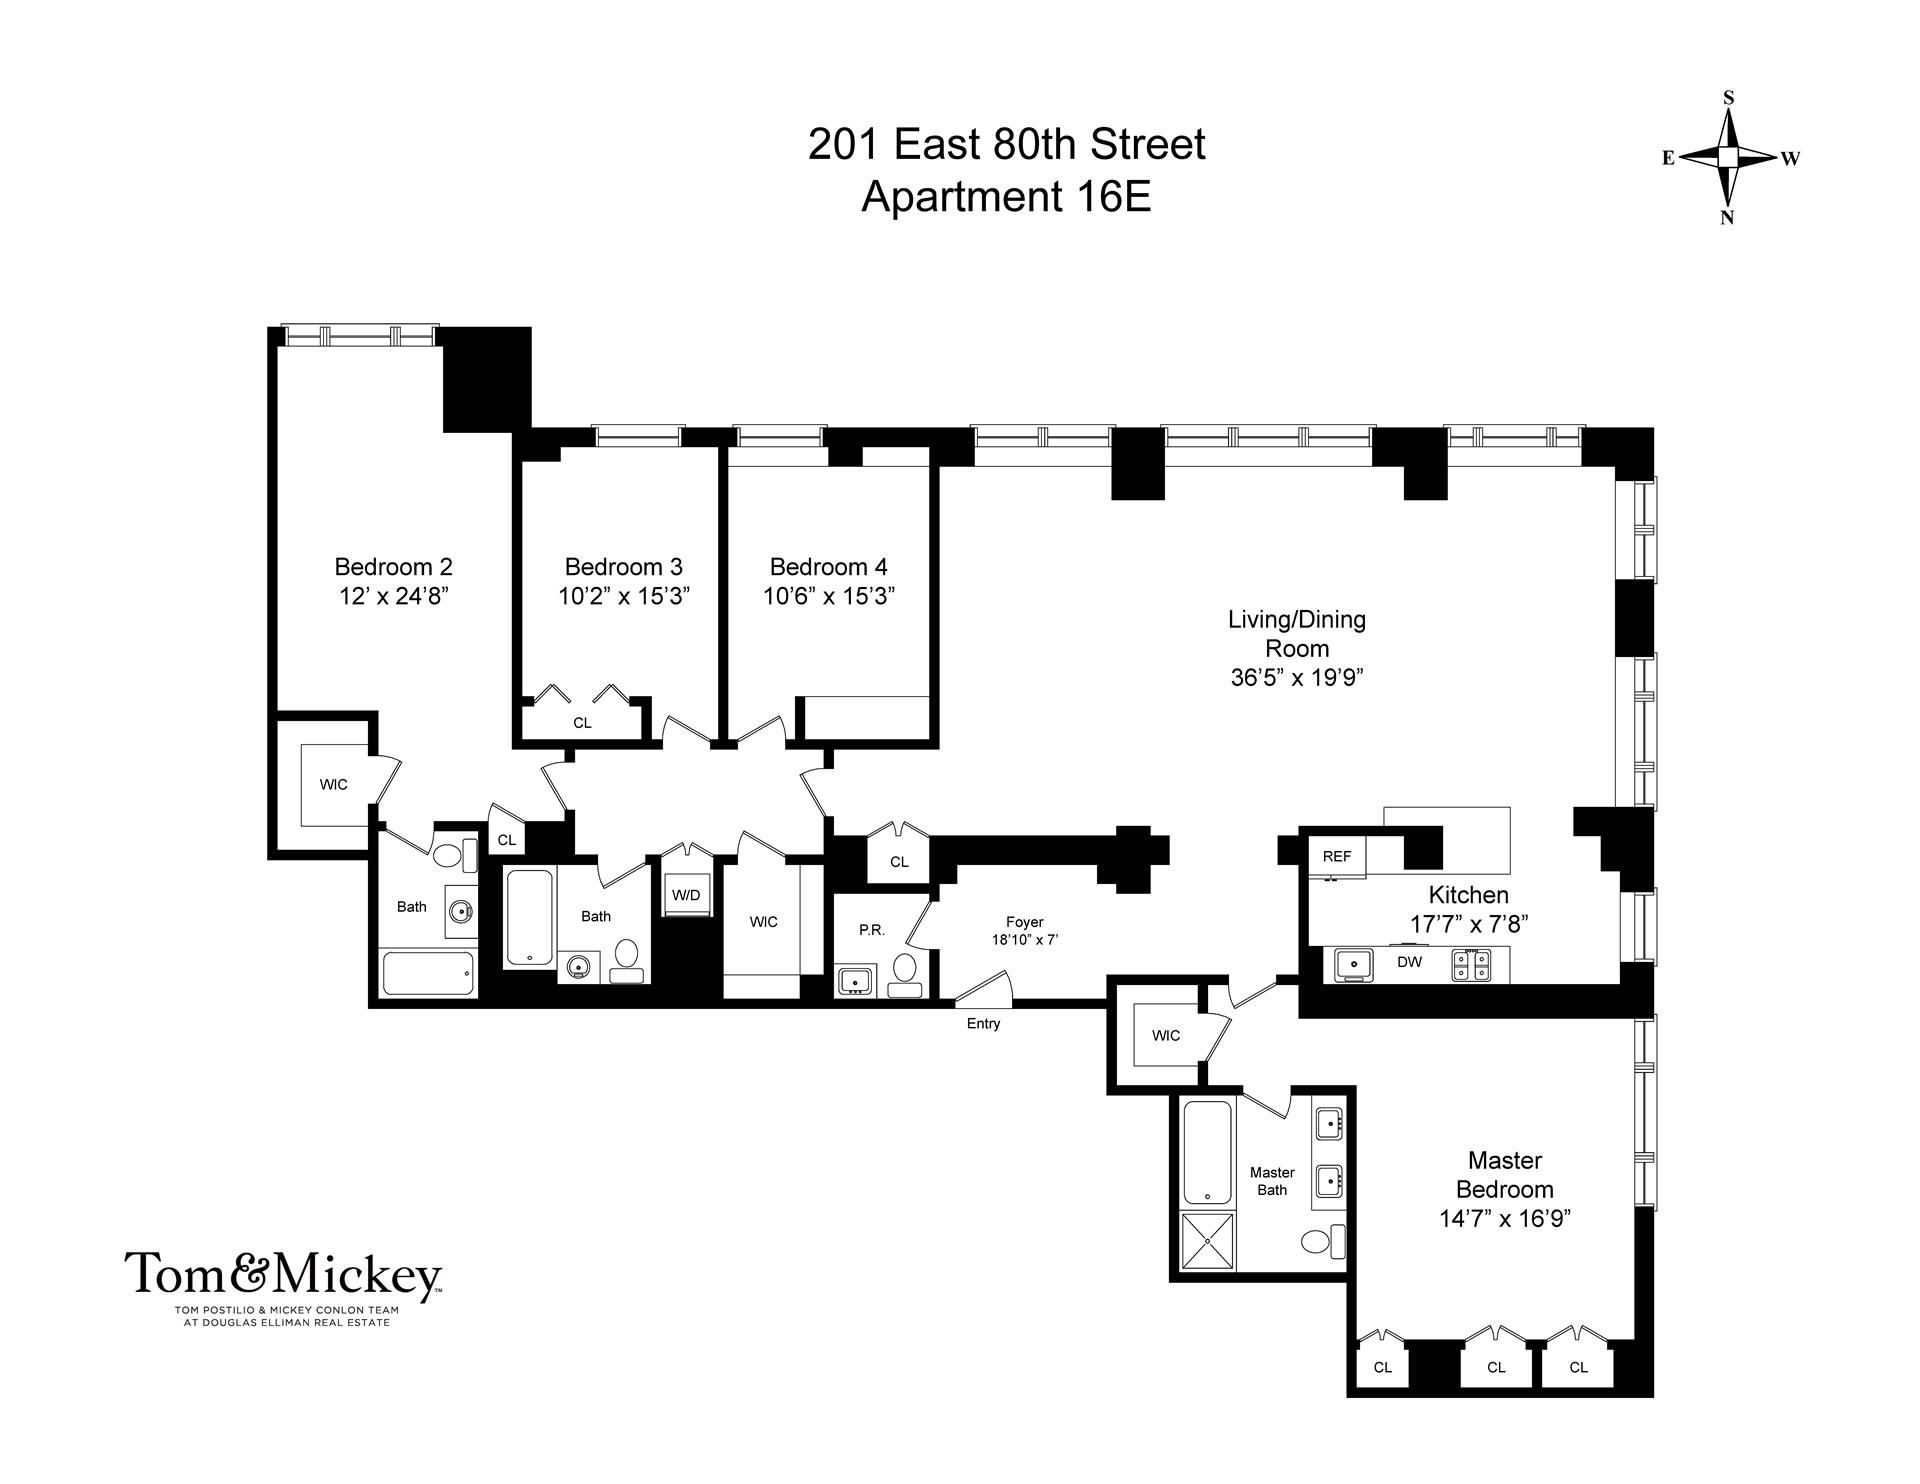 Floor plan of The Richmond, 201 East 80th St, 16E - Upper East Side, New York